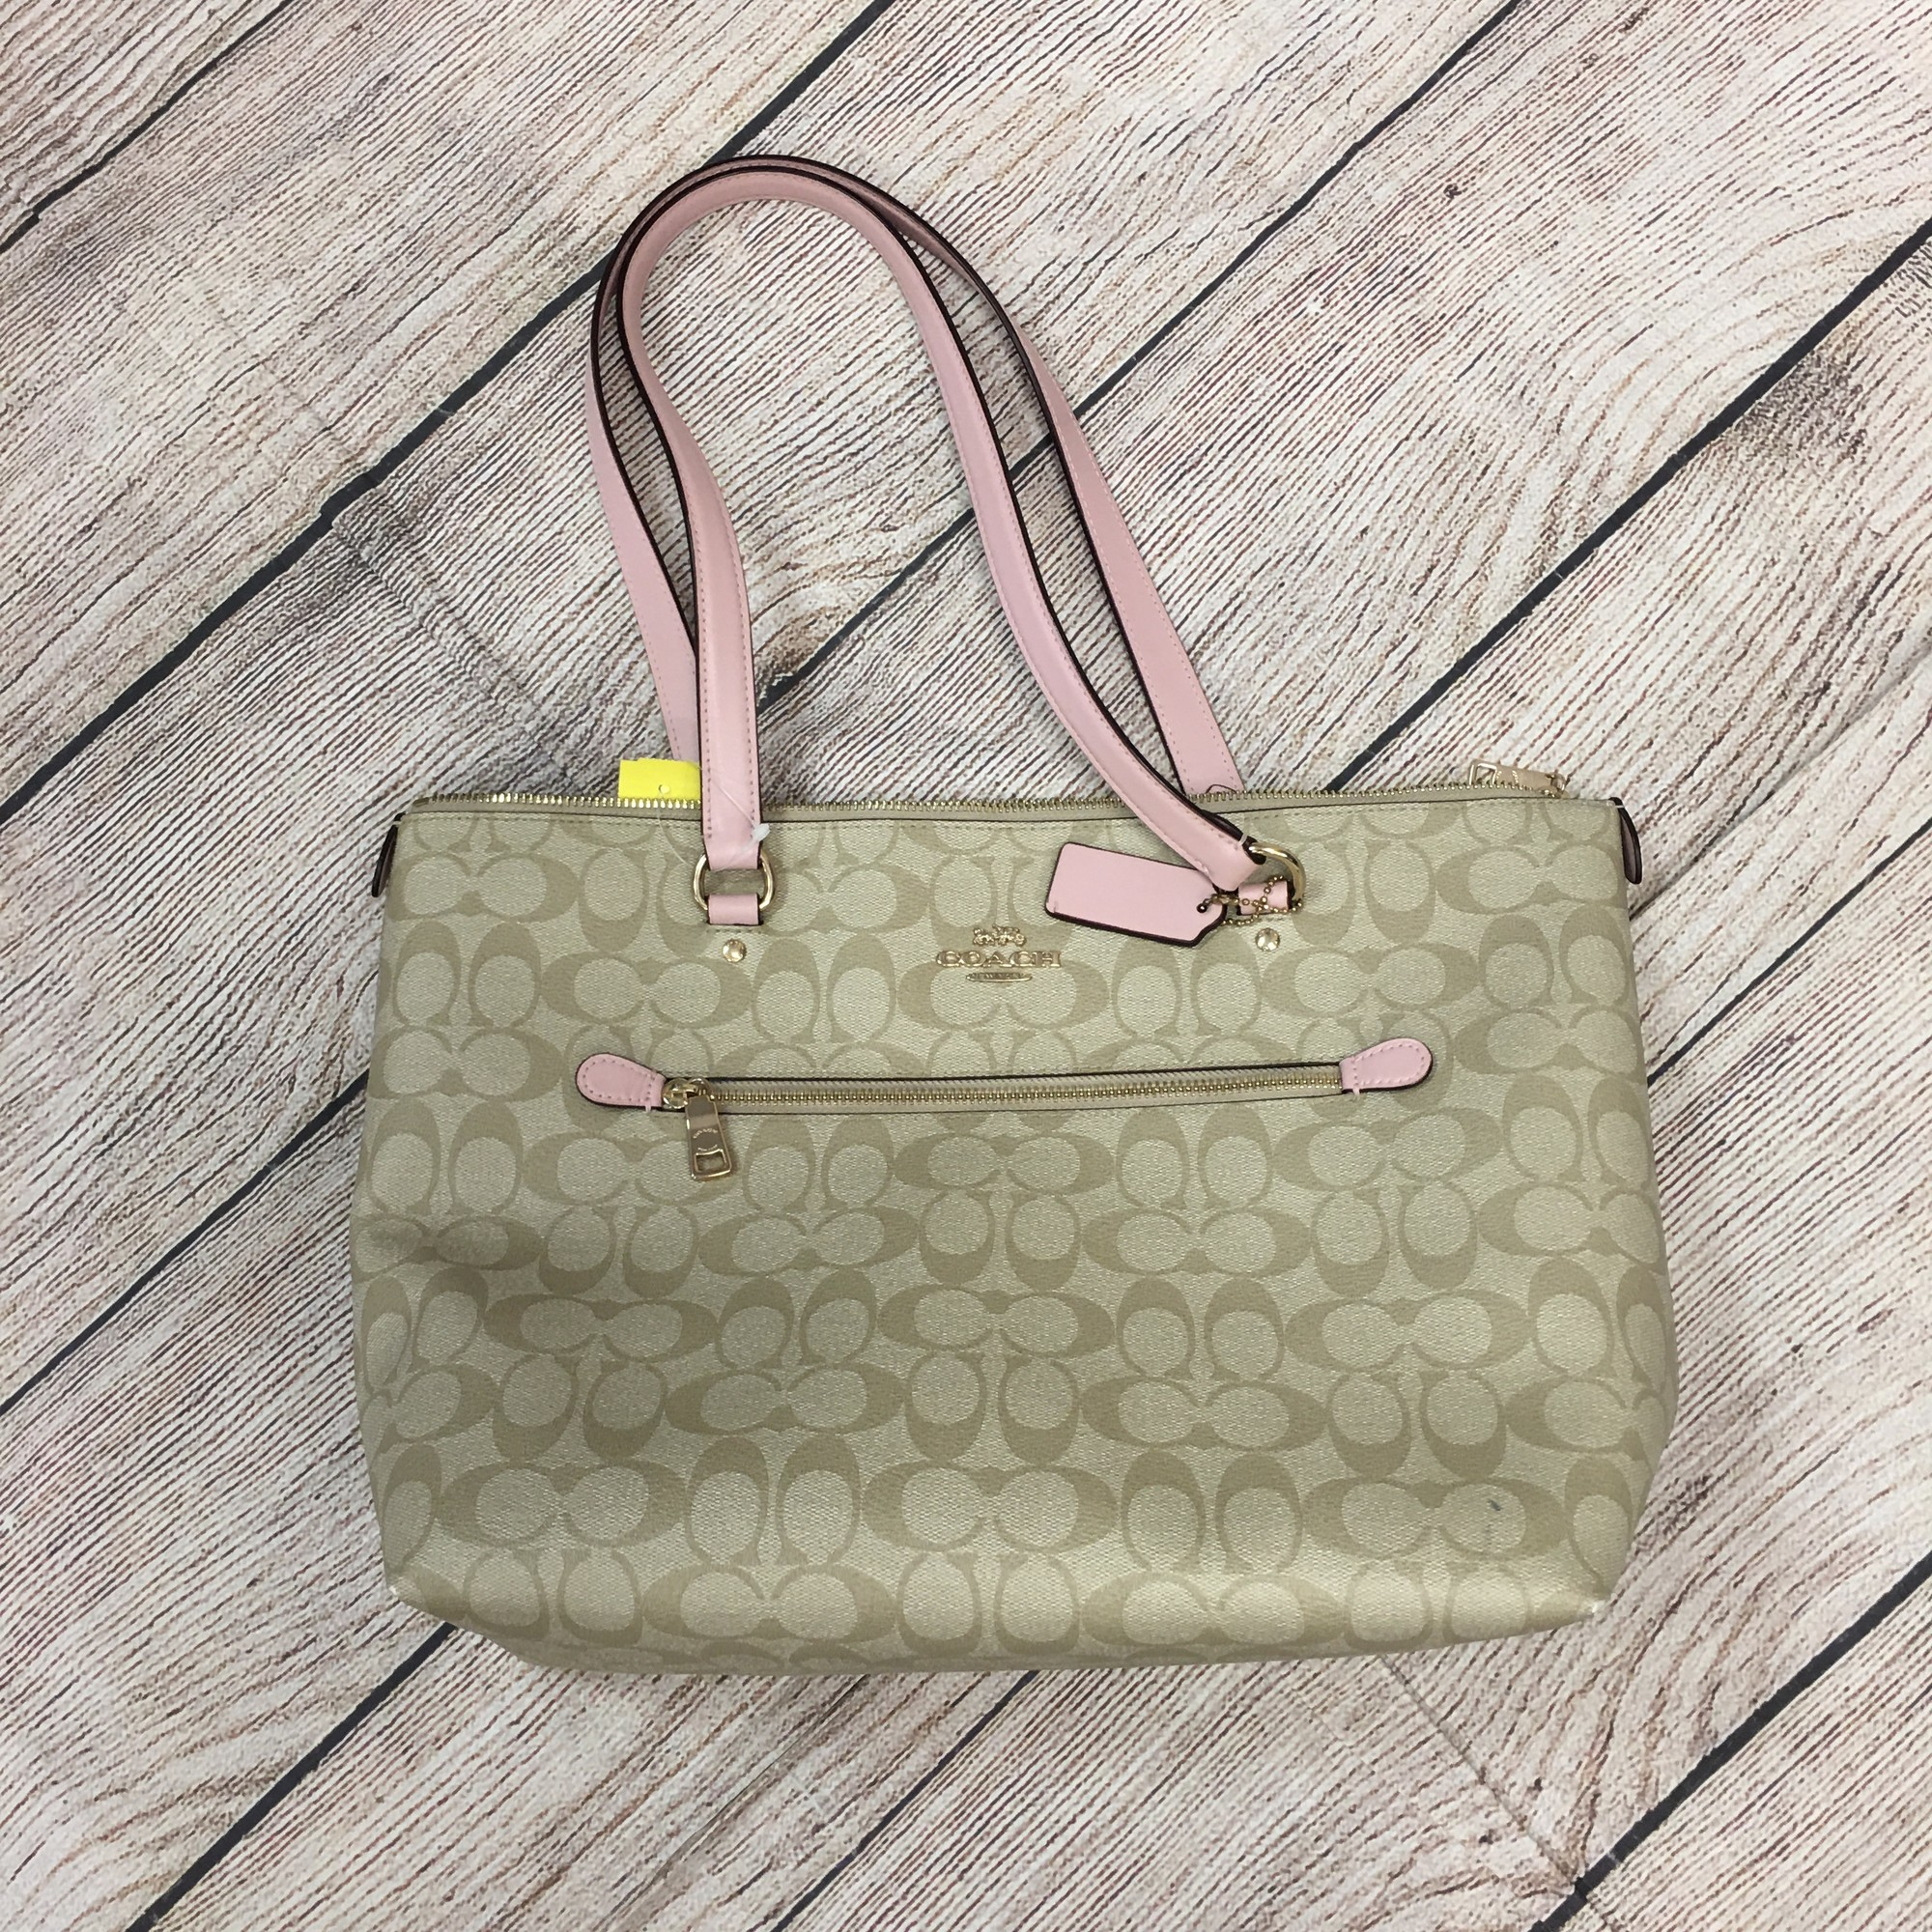 Coach Purse , Khaki, Pink Tote Size: None As IS see pictures